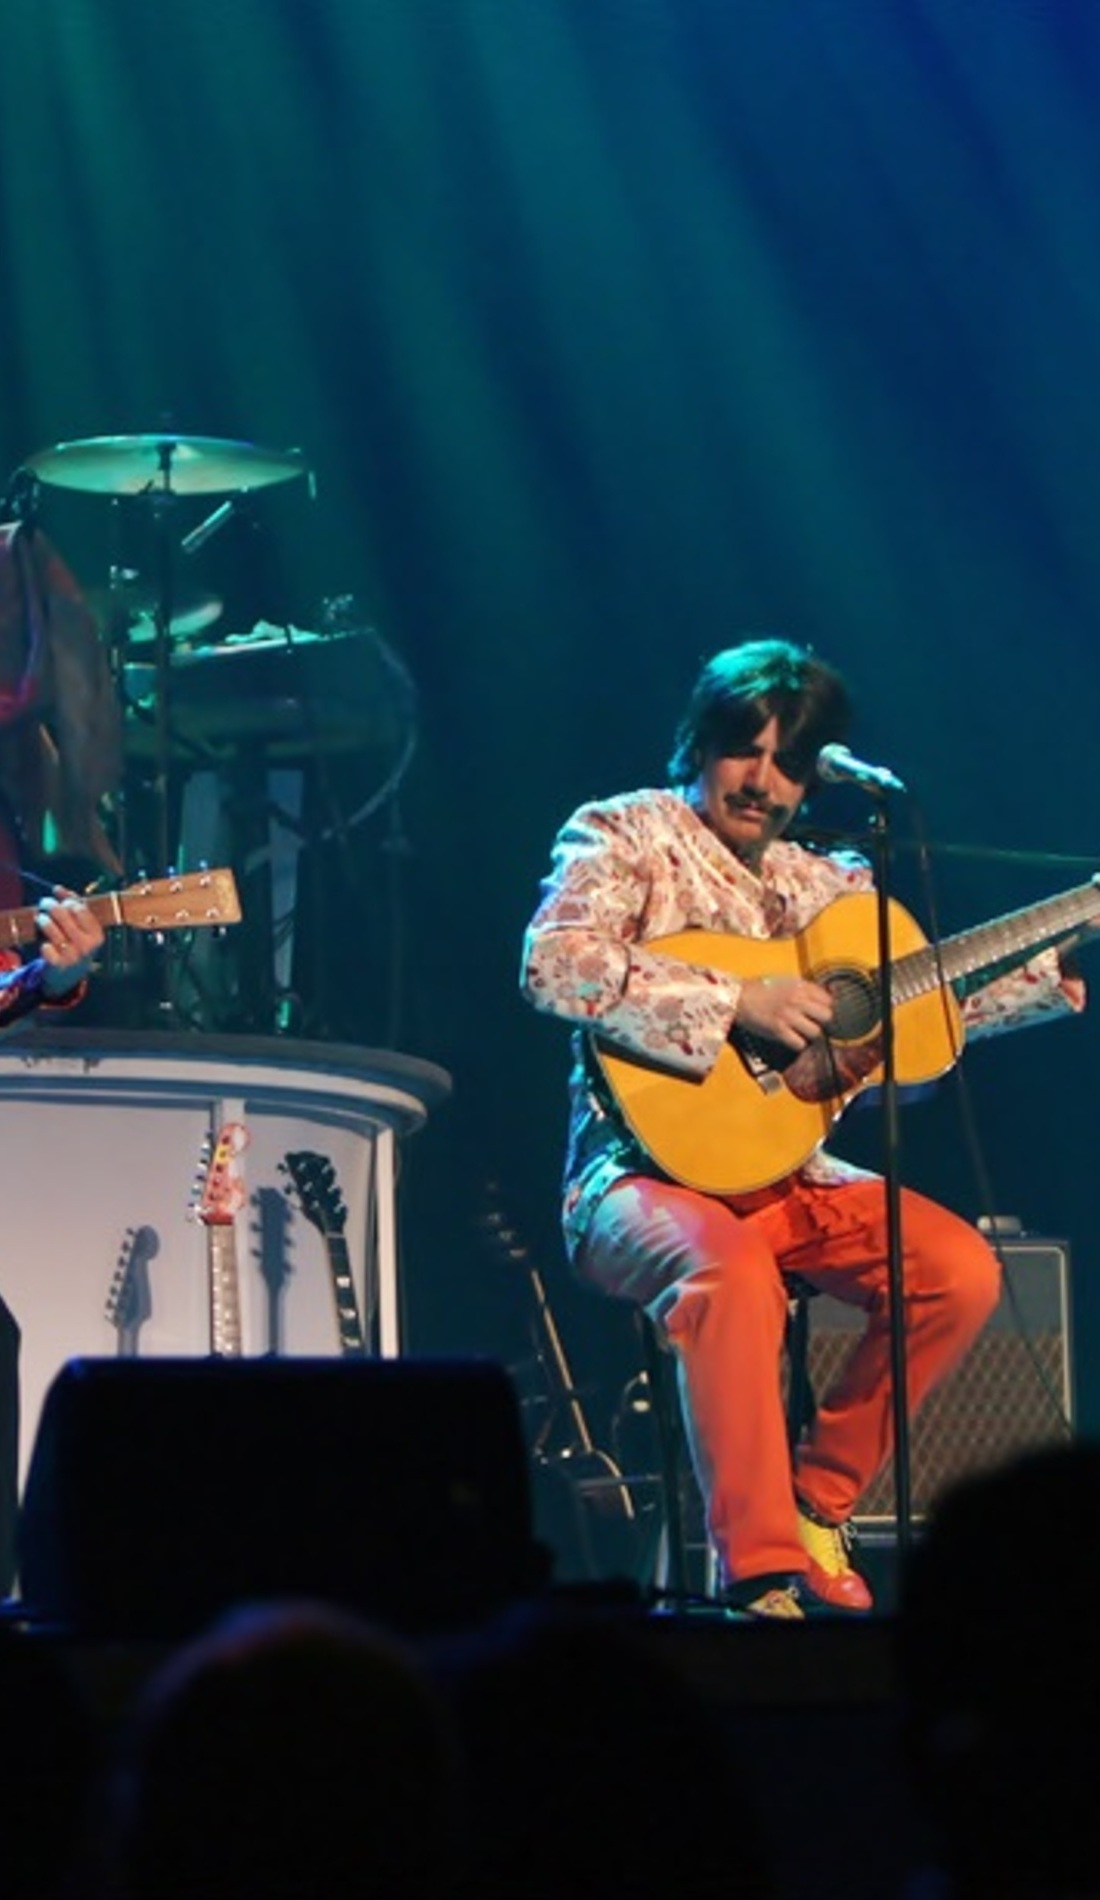 A Rain - A Tribute to The Beatles live event